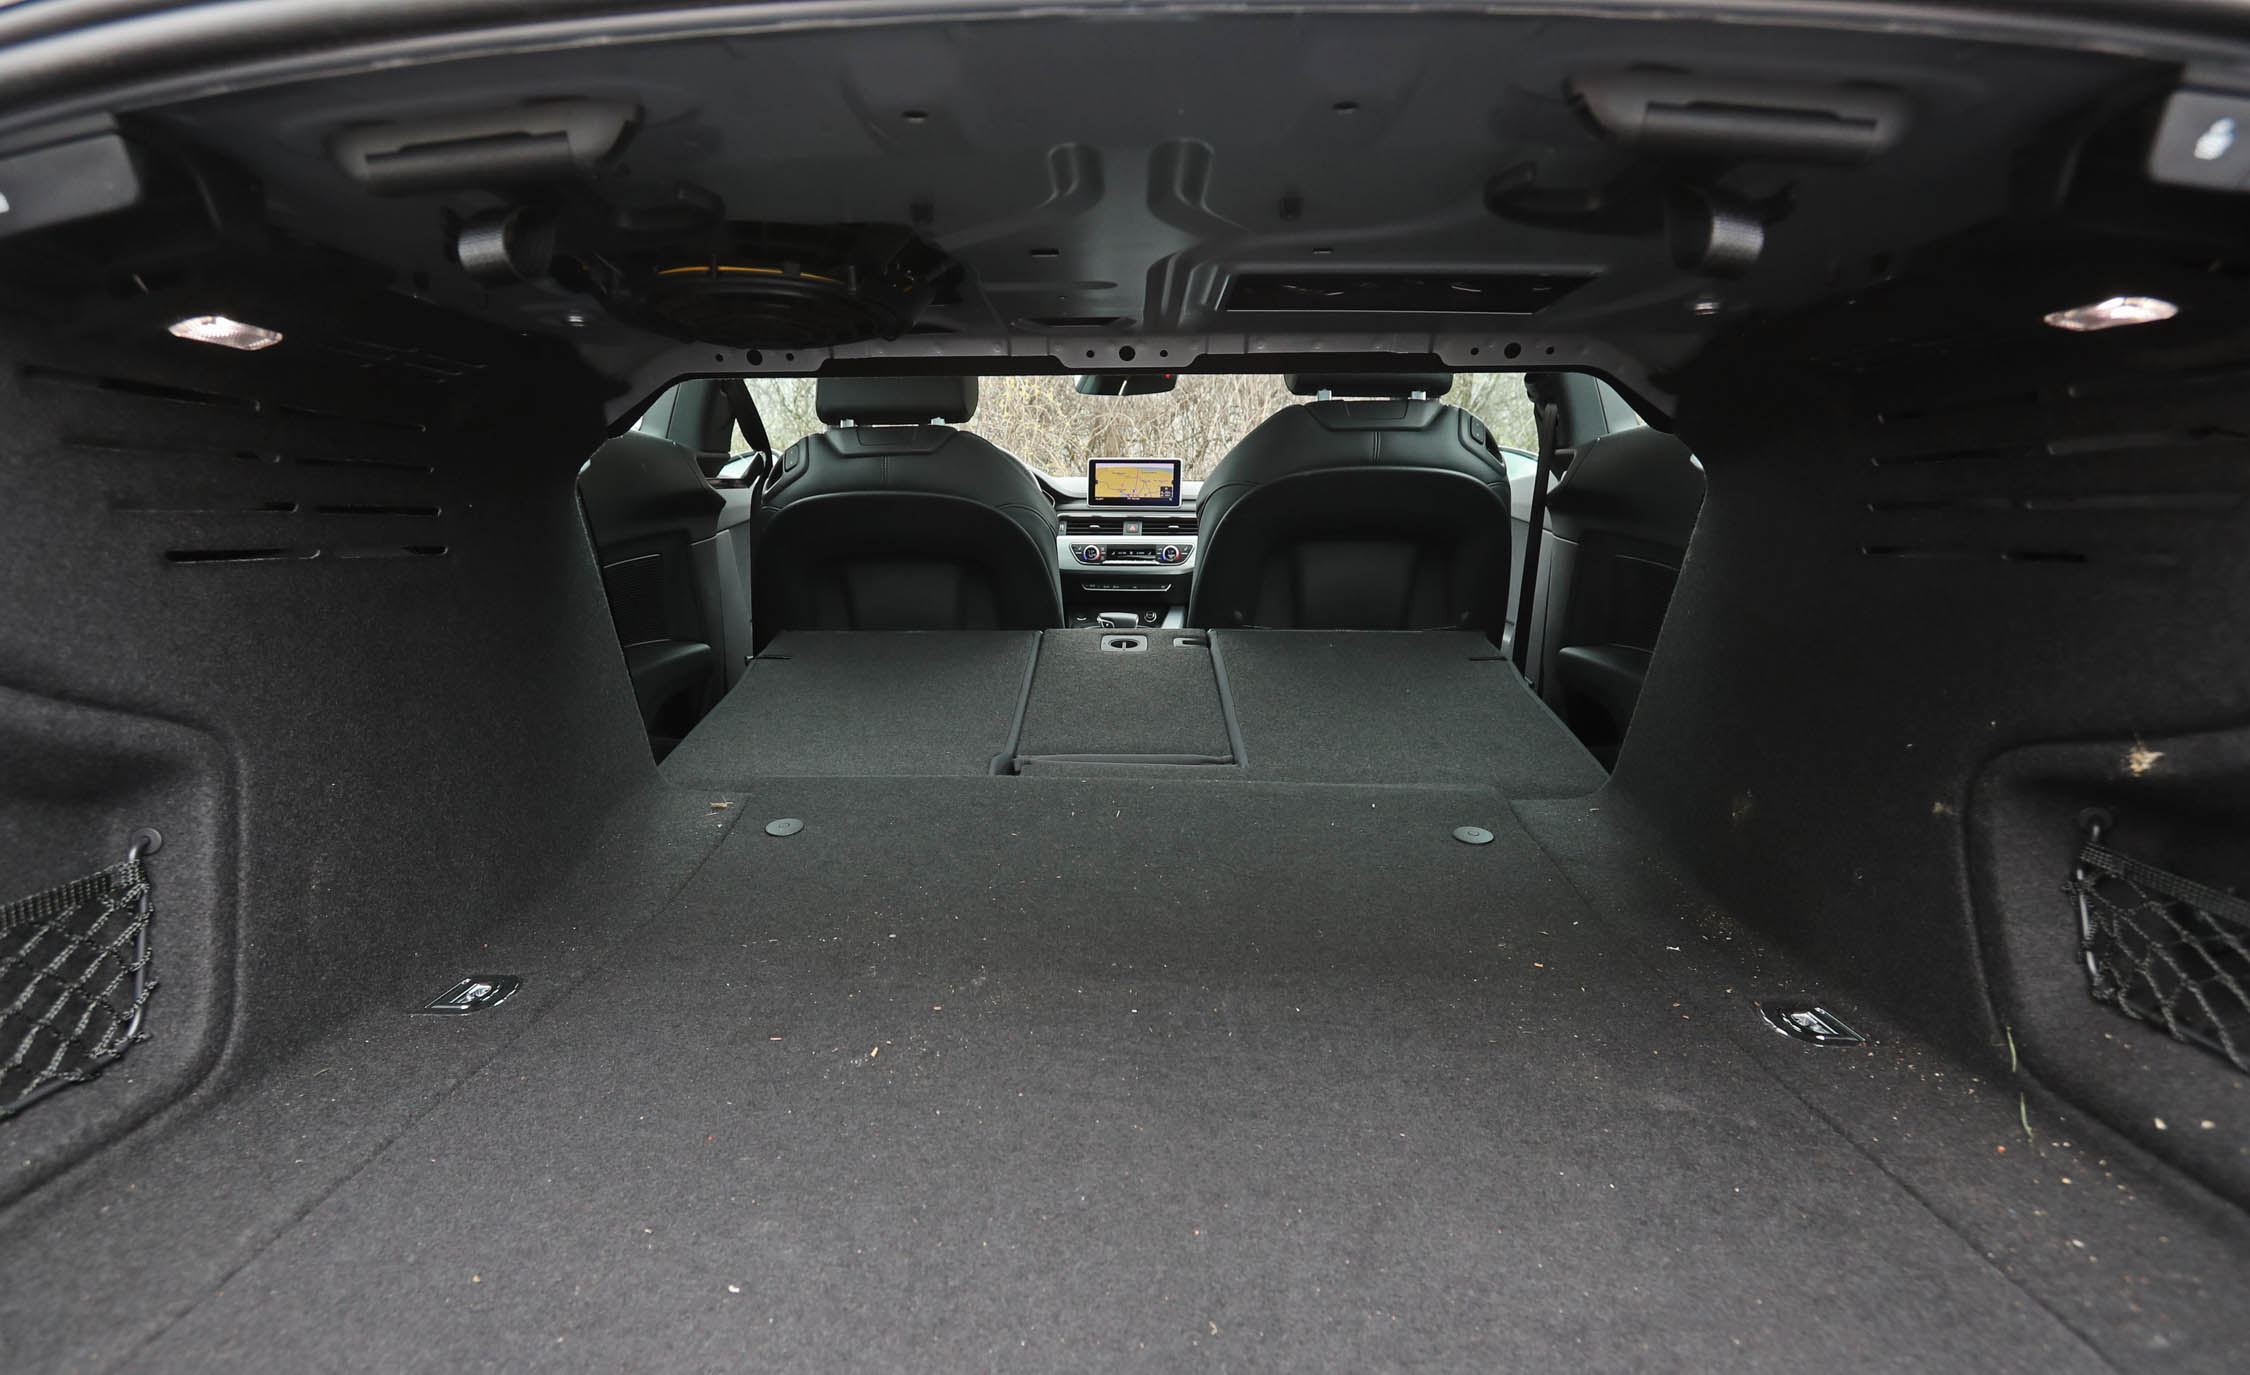 2018 Audi A5 Coupe Interior View Cargo Trunk Seats Folded (Photo 27 of 50)